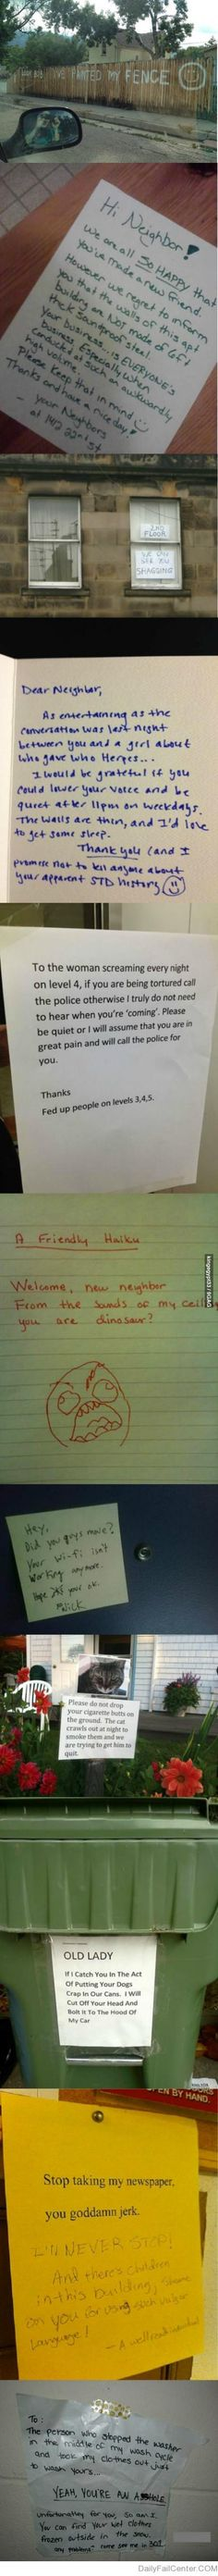 Getting on with your neighbours. How not to do it. HILARIOUS